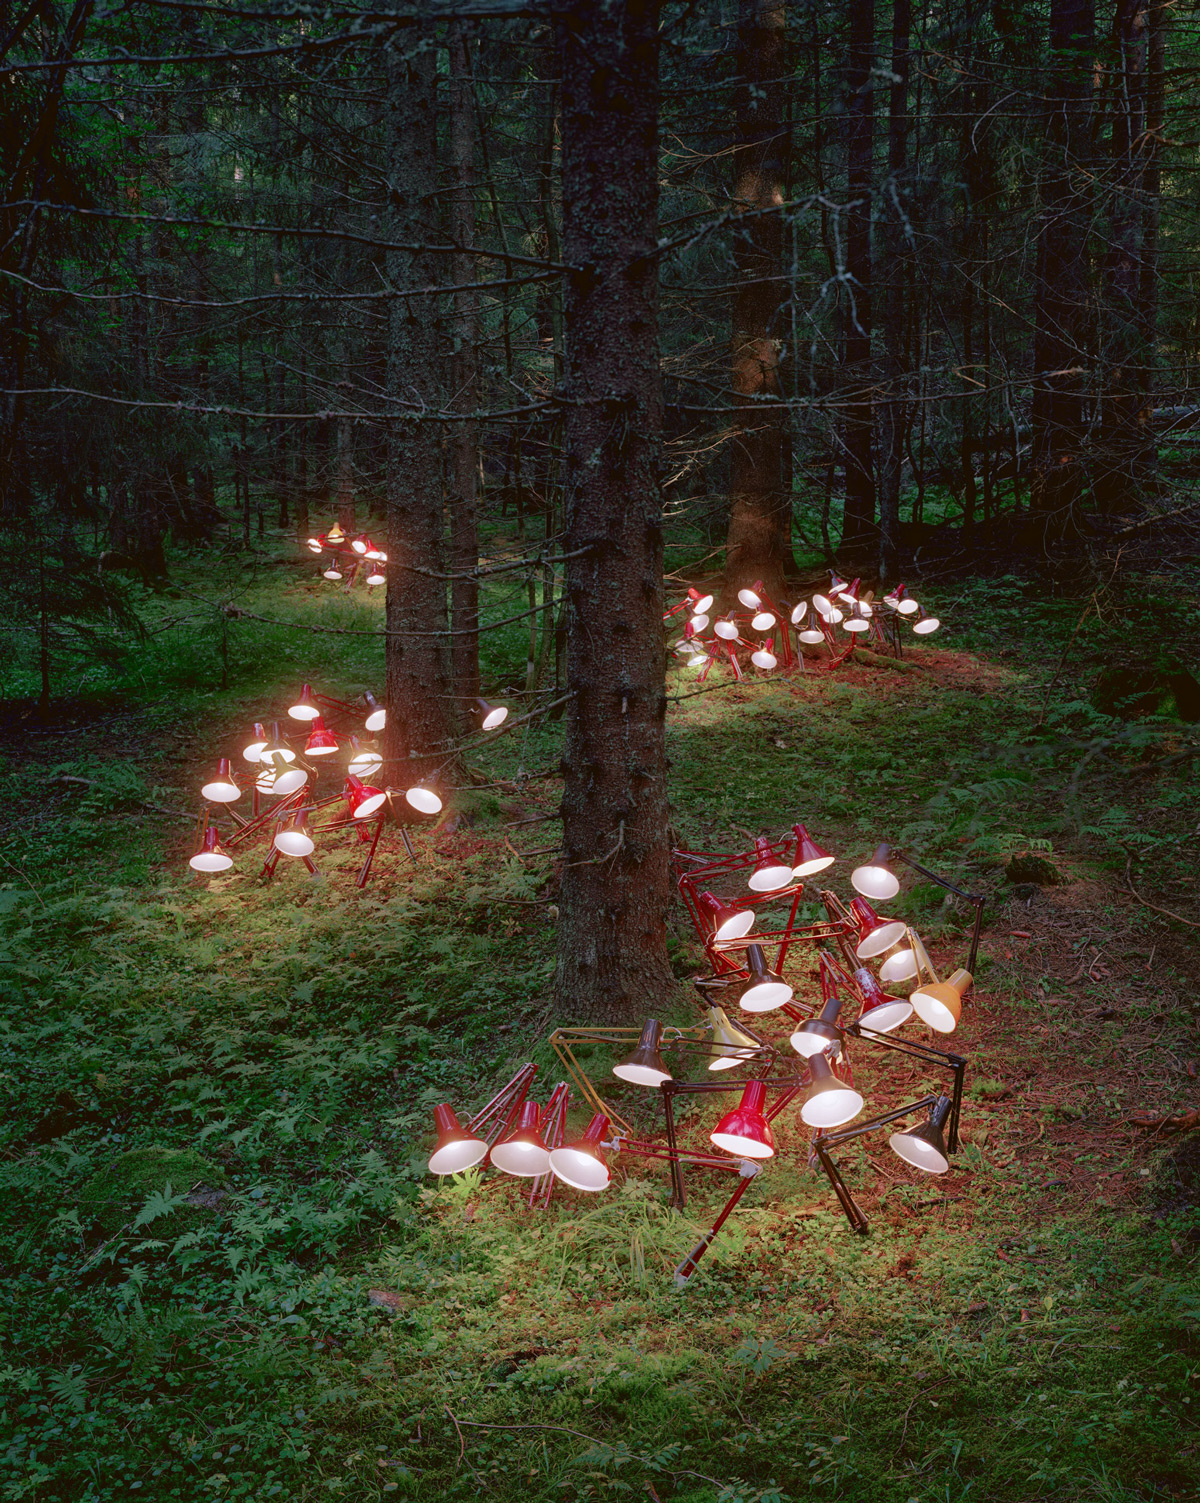 Wonderful surrealist art installations by Rune Guneriussen in his native Norway.